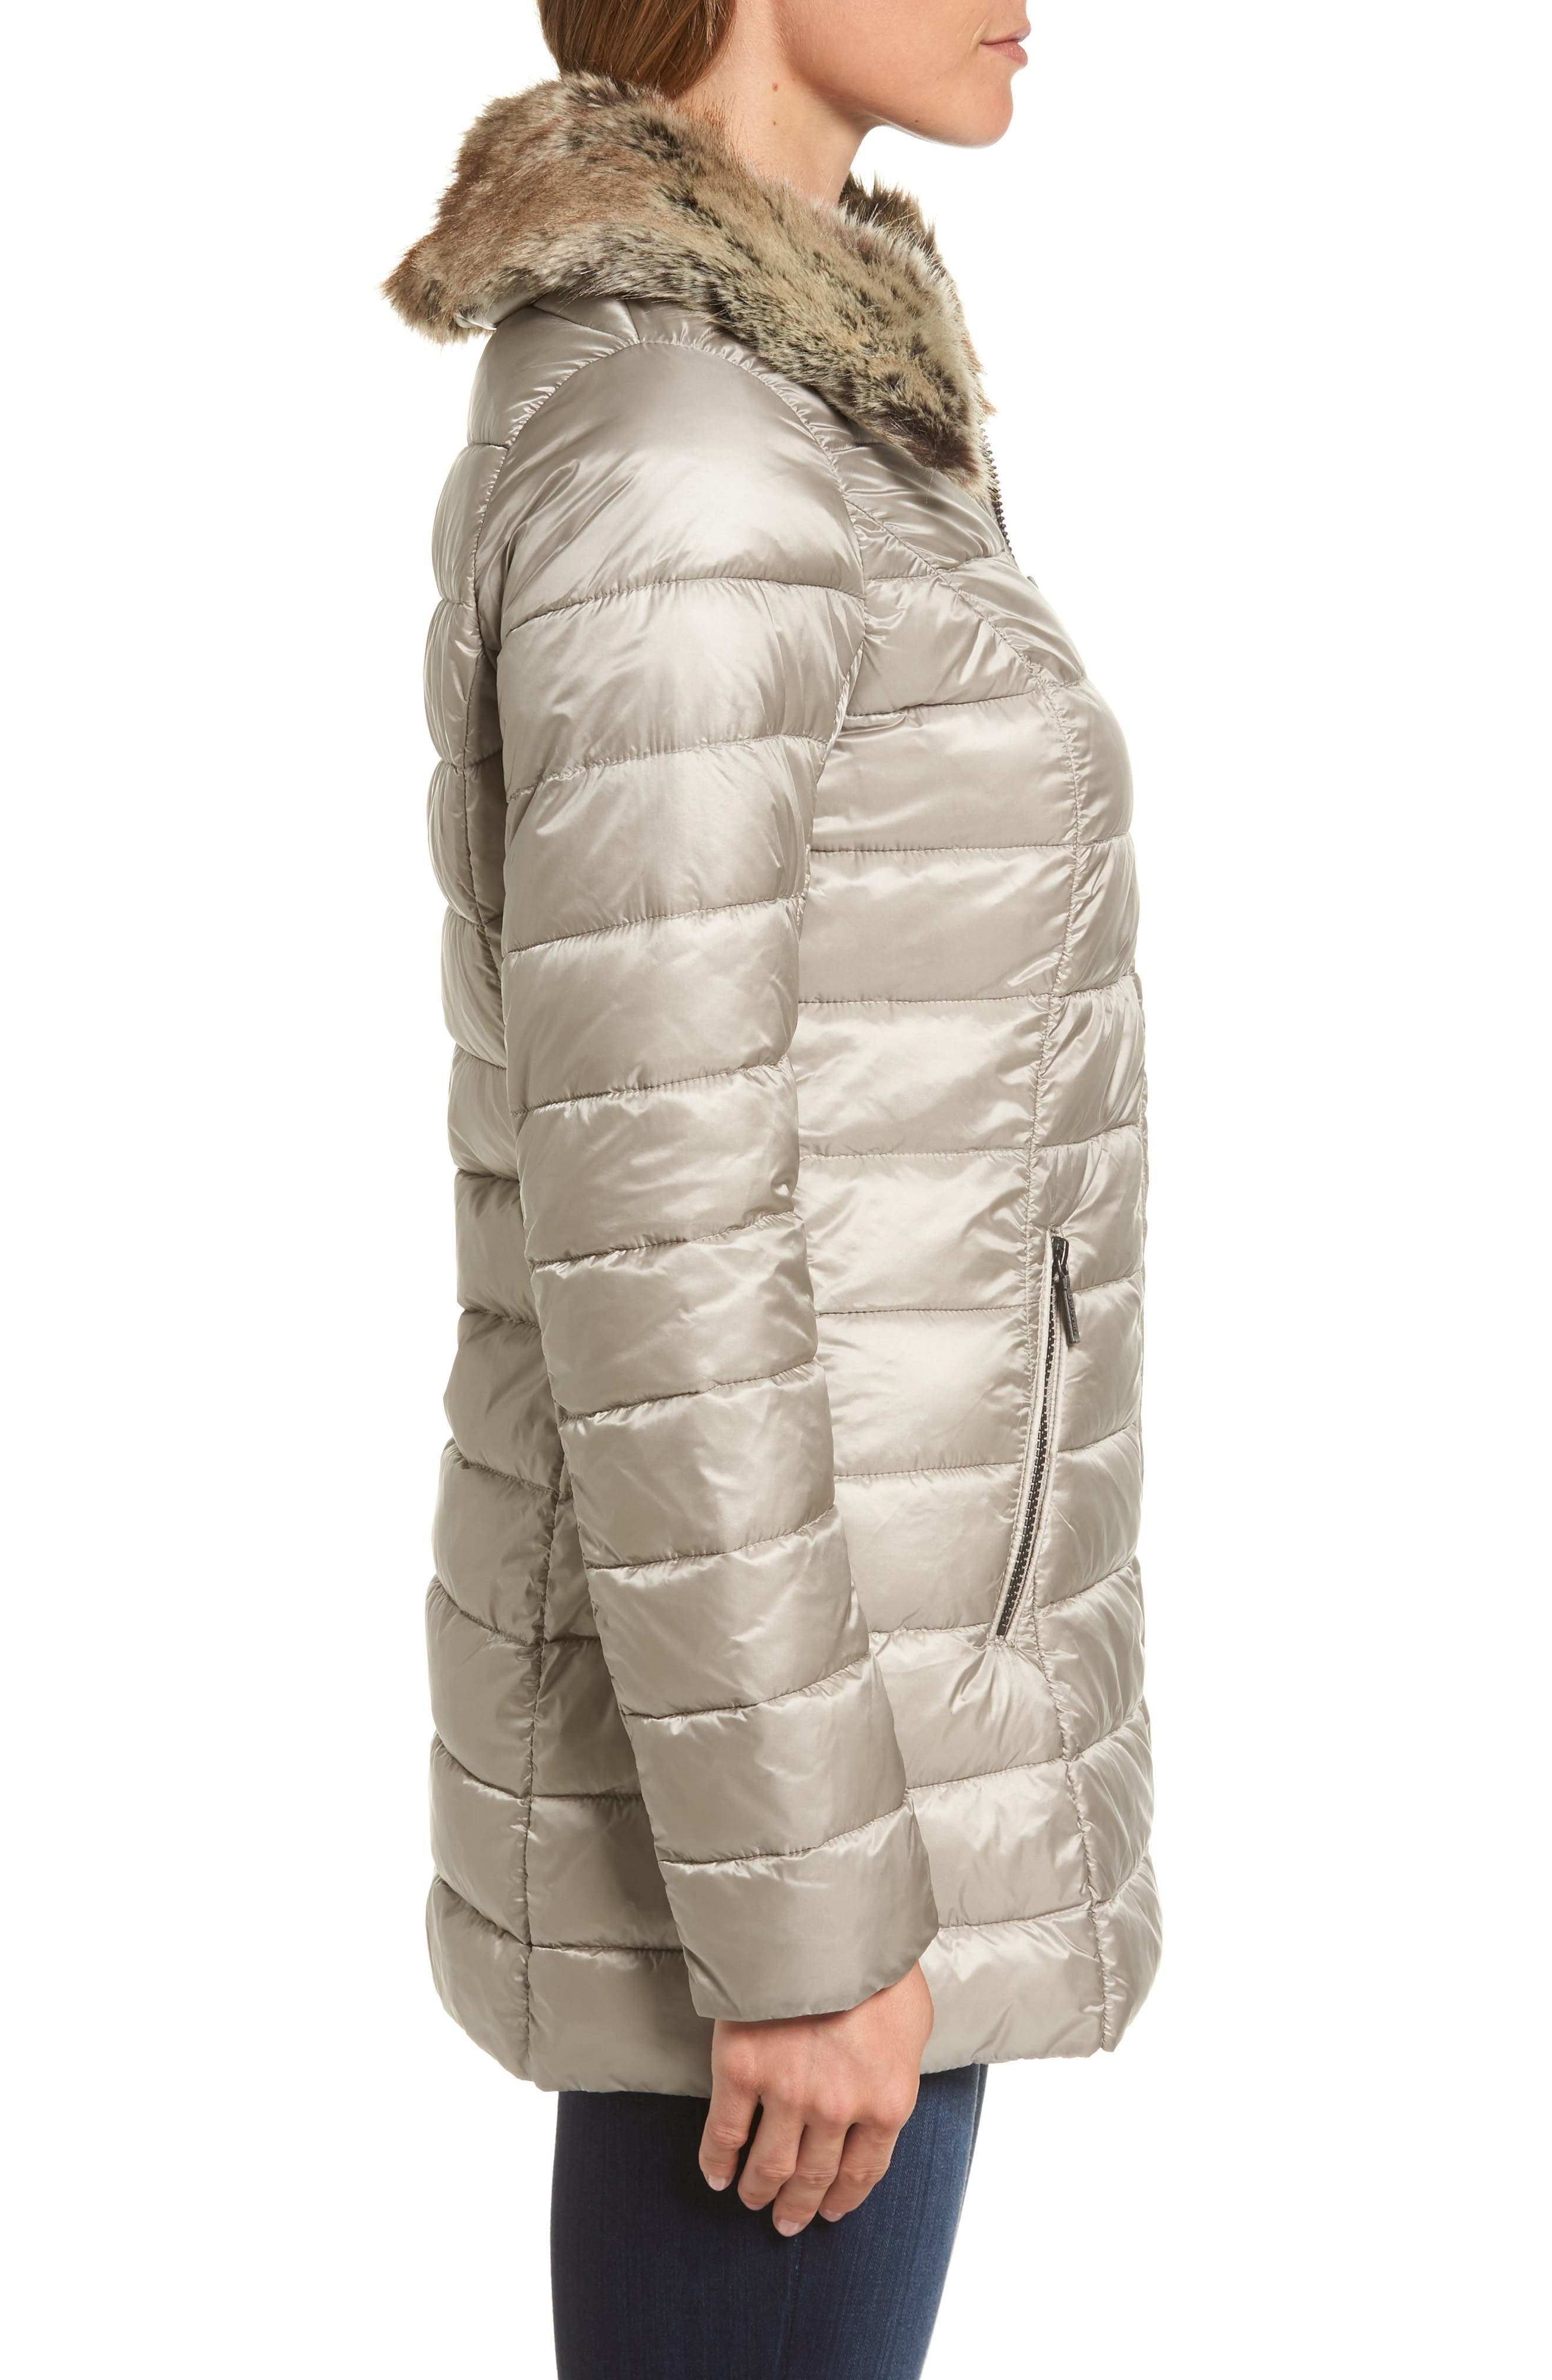 Rambleton Water Resistant Quilted Jacket with Faux Fur Collar,                             Alternate thumbnail 3, color,                             270